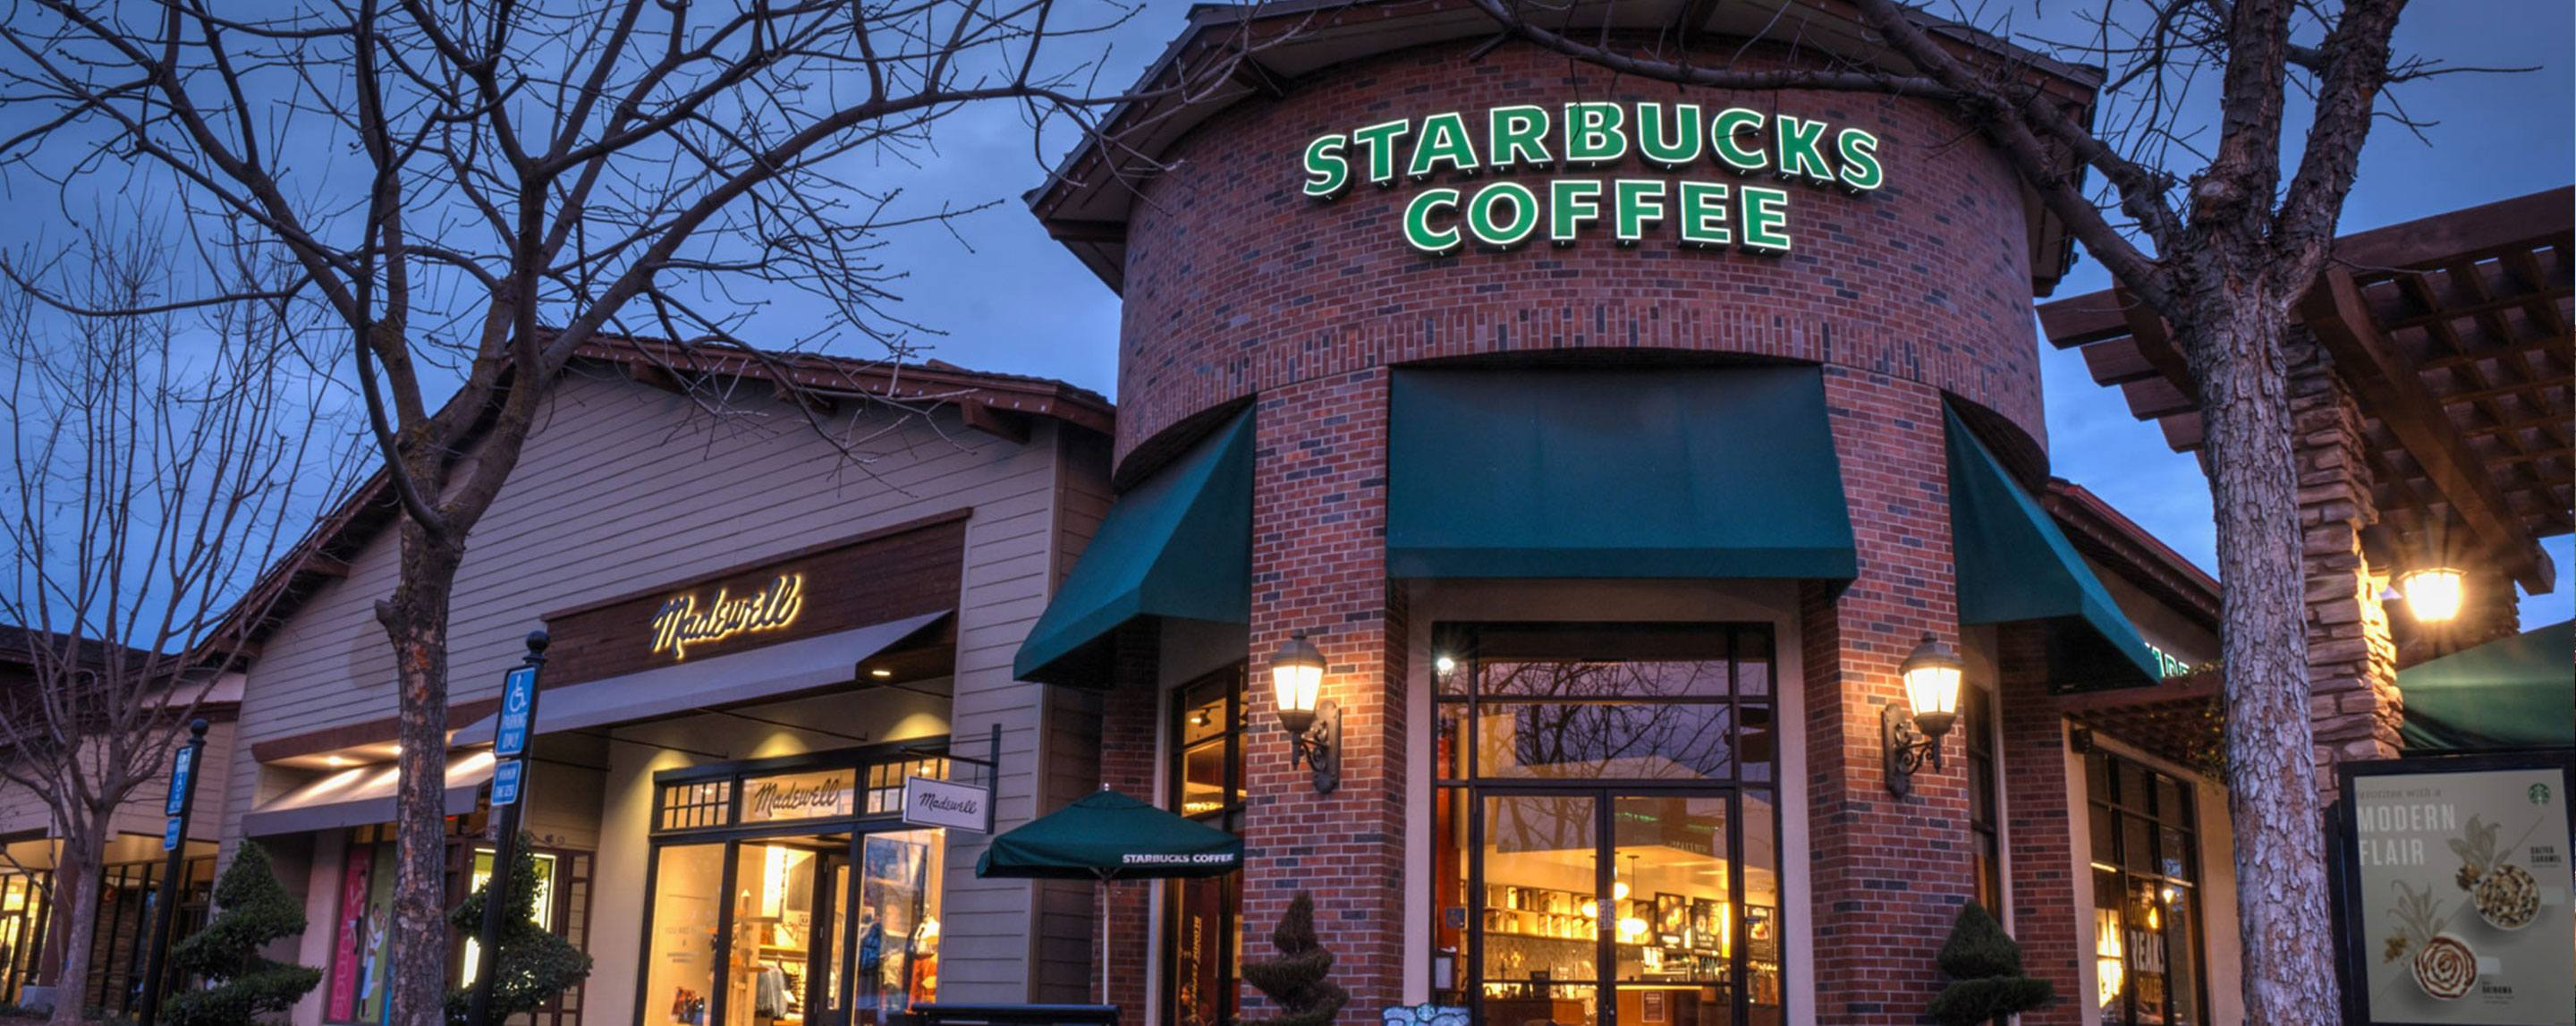 A shot of the exterior of a Starbucks at twilight. The Starbucks is well lit and made of bricks.